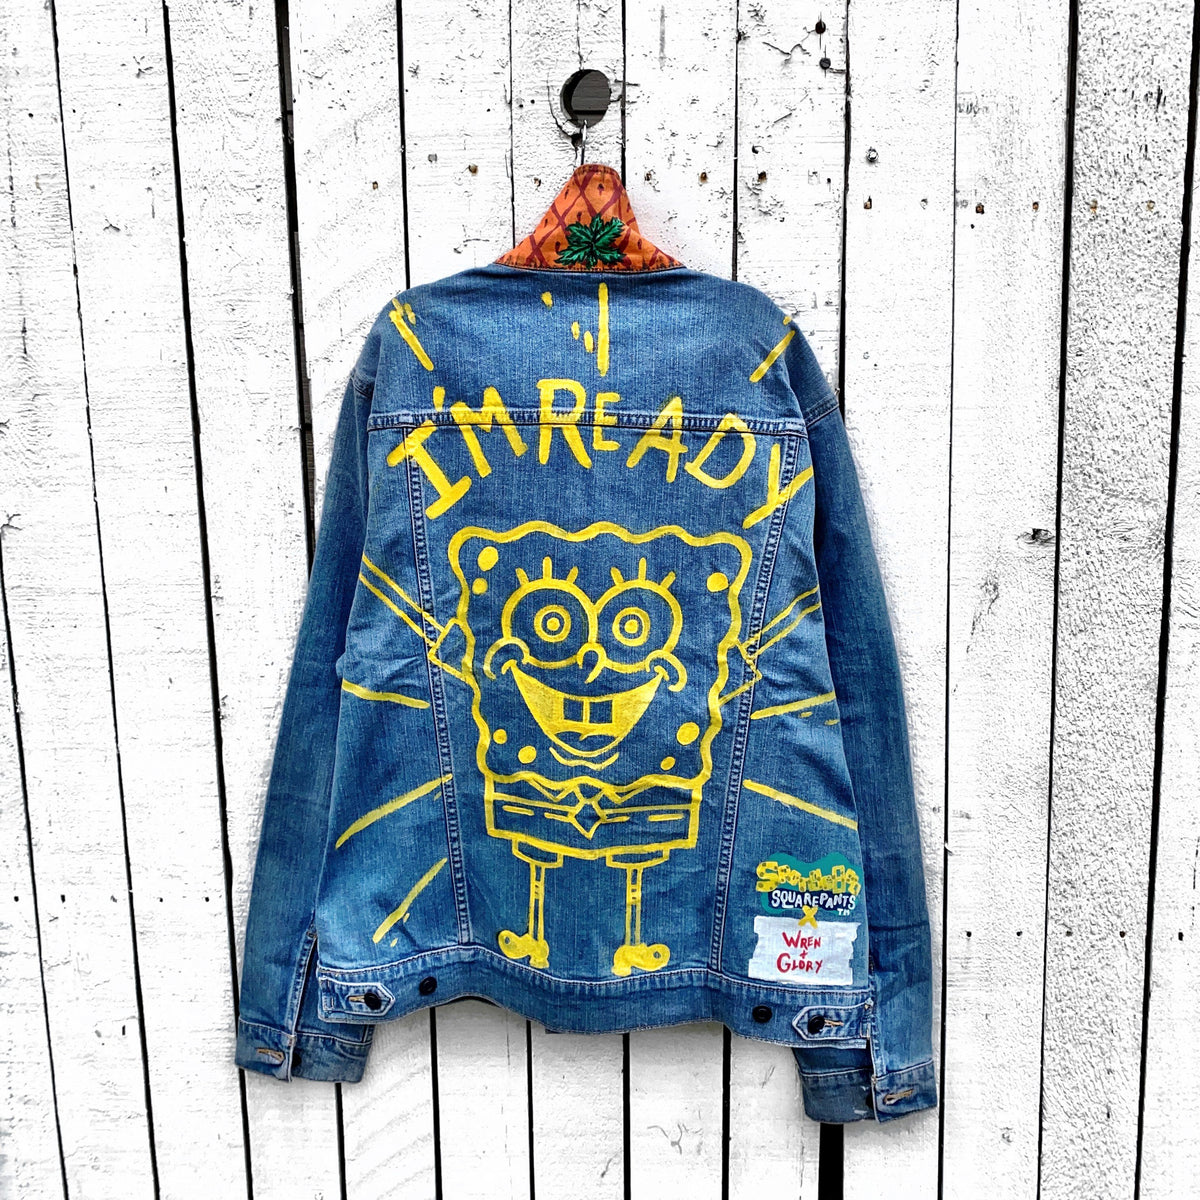 WG x SpongeBob SquarePants 'IM READY' DENIM JACKET